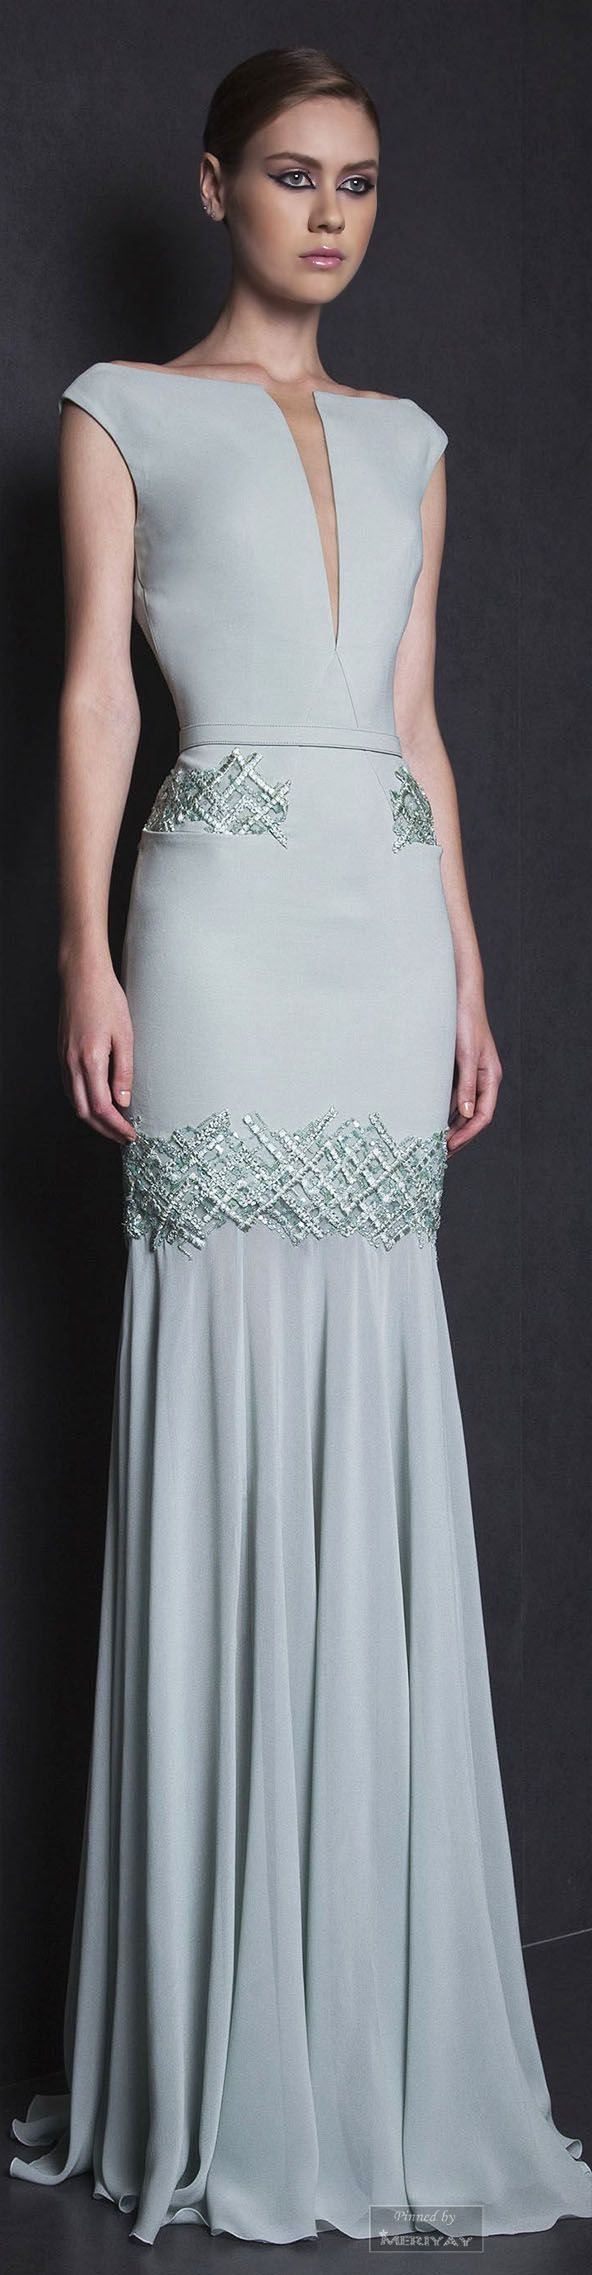 305 best Dresses images on Pinterest | Bridal gowns, Wedding frocks ...